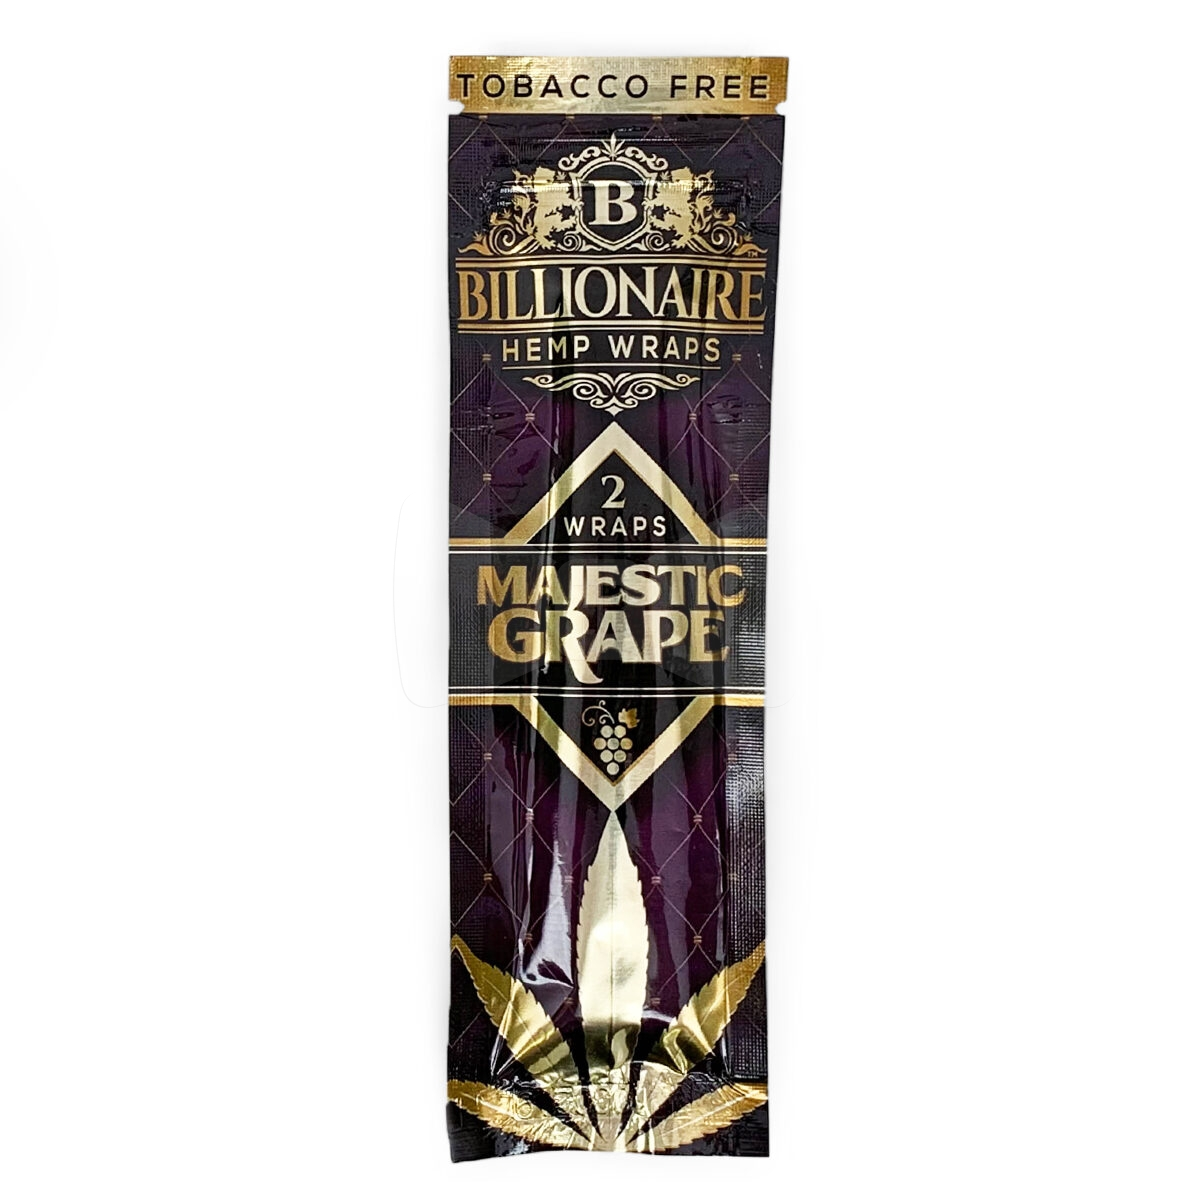 Billionaire Hemp Wraps Majestic Grape Single Pack